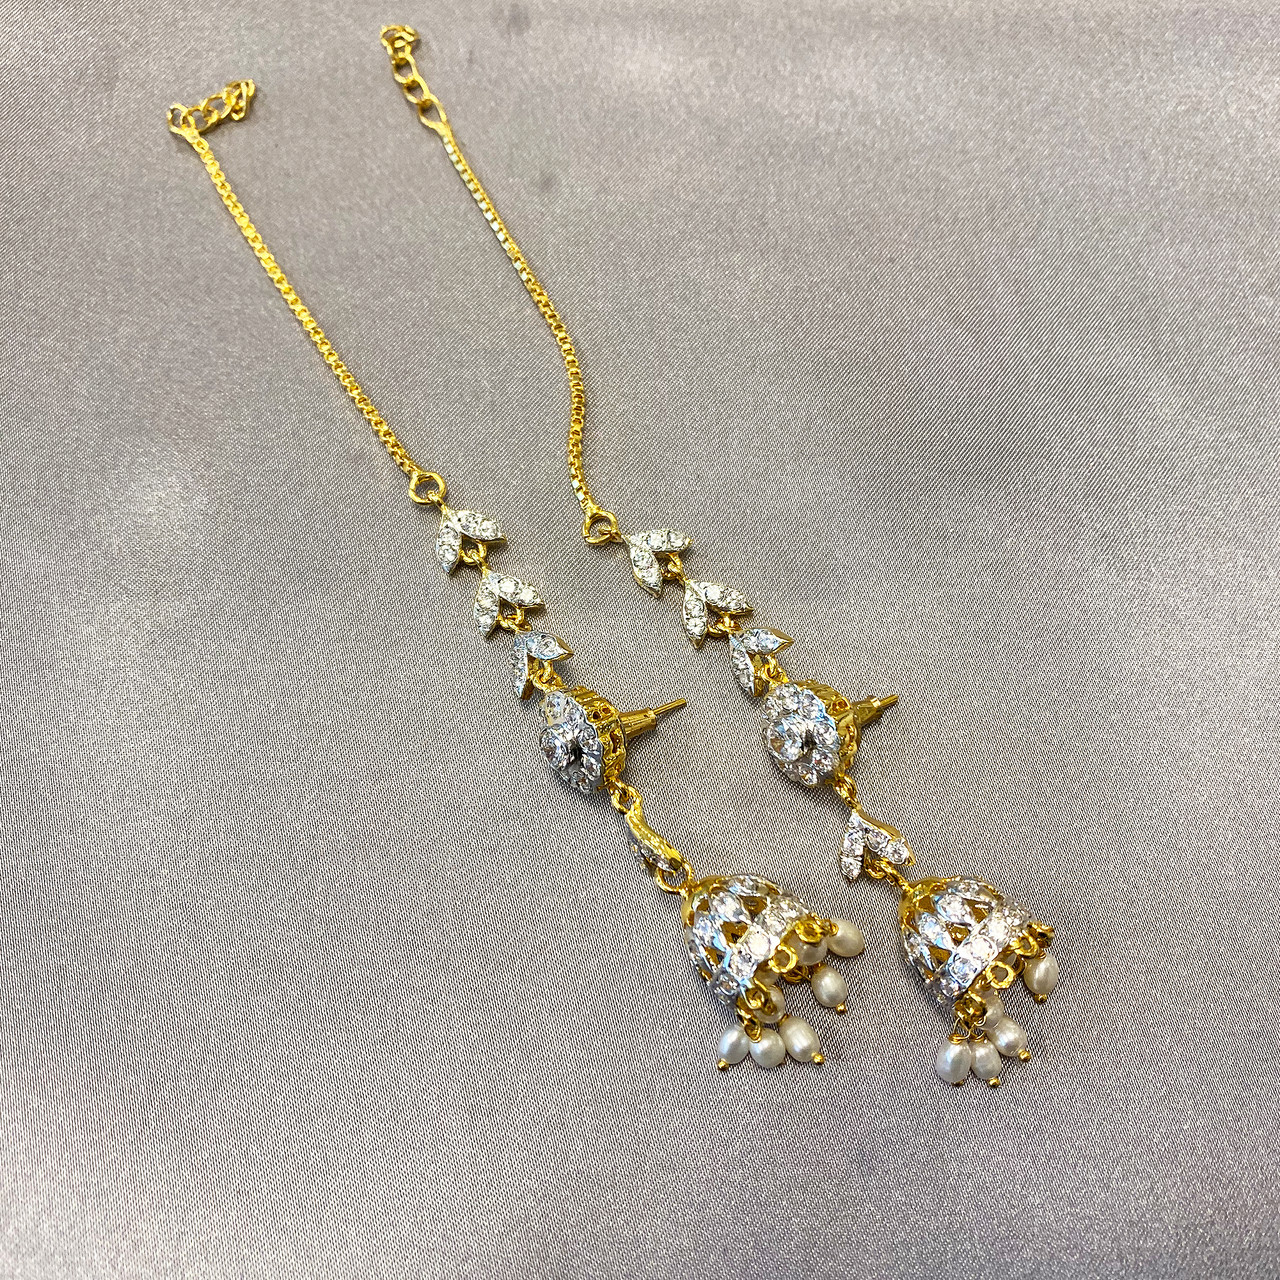 Gem Avenue Gold Plated Pearls and Glass Stone Earrings Necklace Set 16 inch with extra link Chain